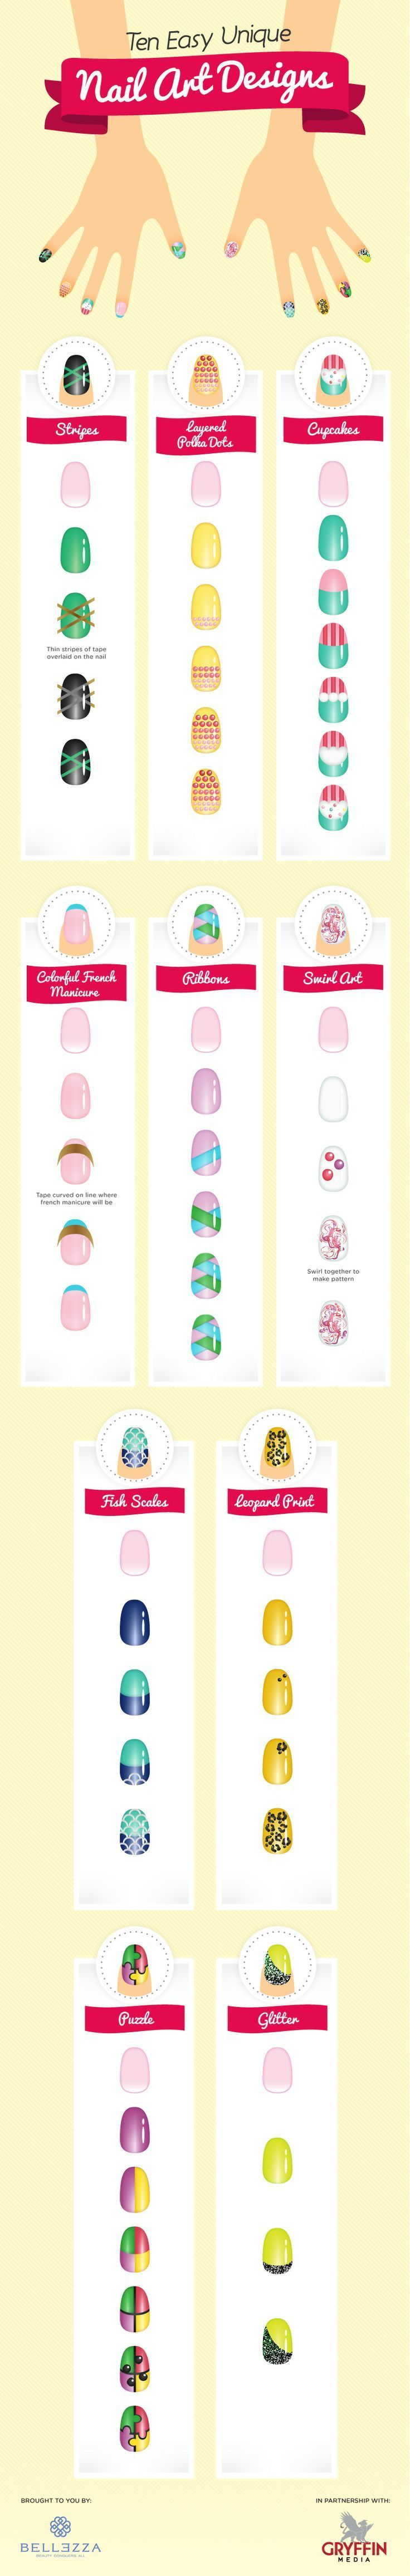 Nail Art Designs - Unique Nail Art - How to Nail Art | Deposit a Gift Blog - Raise Money Online